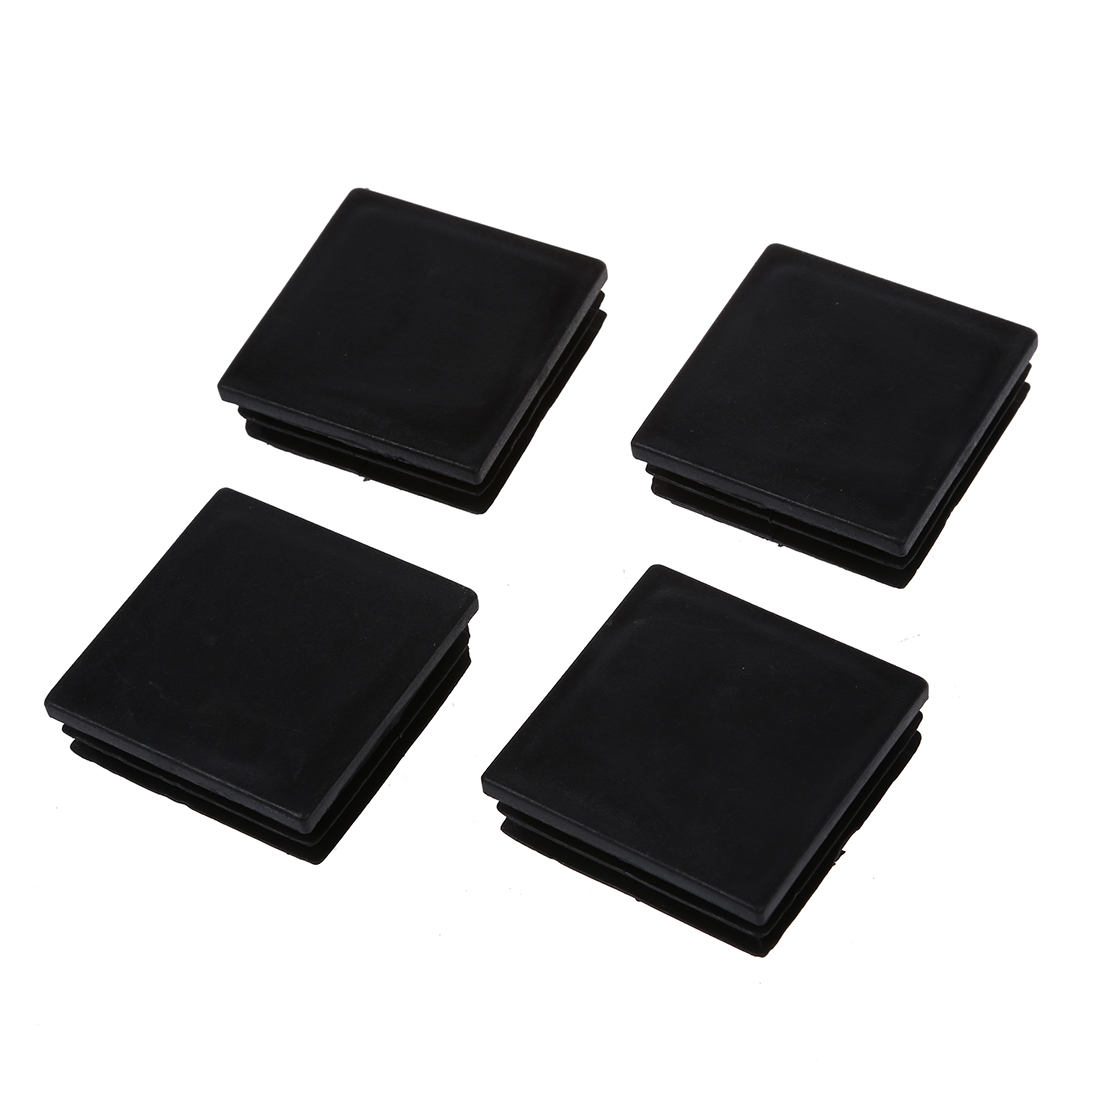 4Pcs Black Plastic Blanking End Caps Square Inserts For Tube Pipe Box Section Wholesales